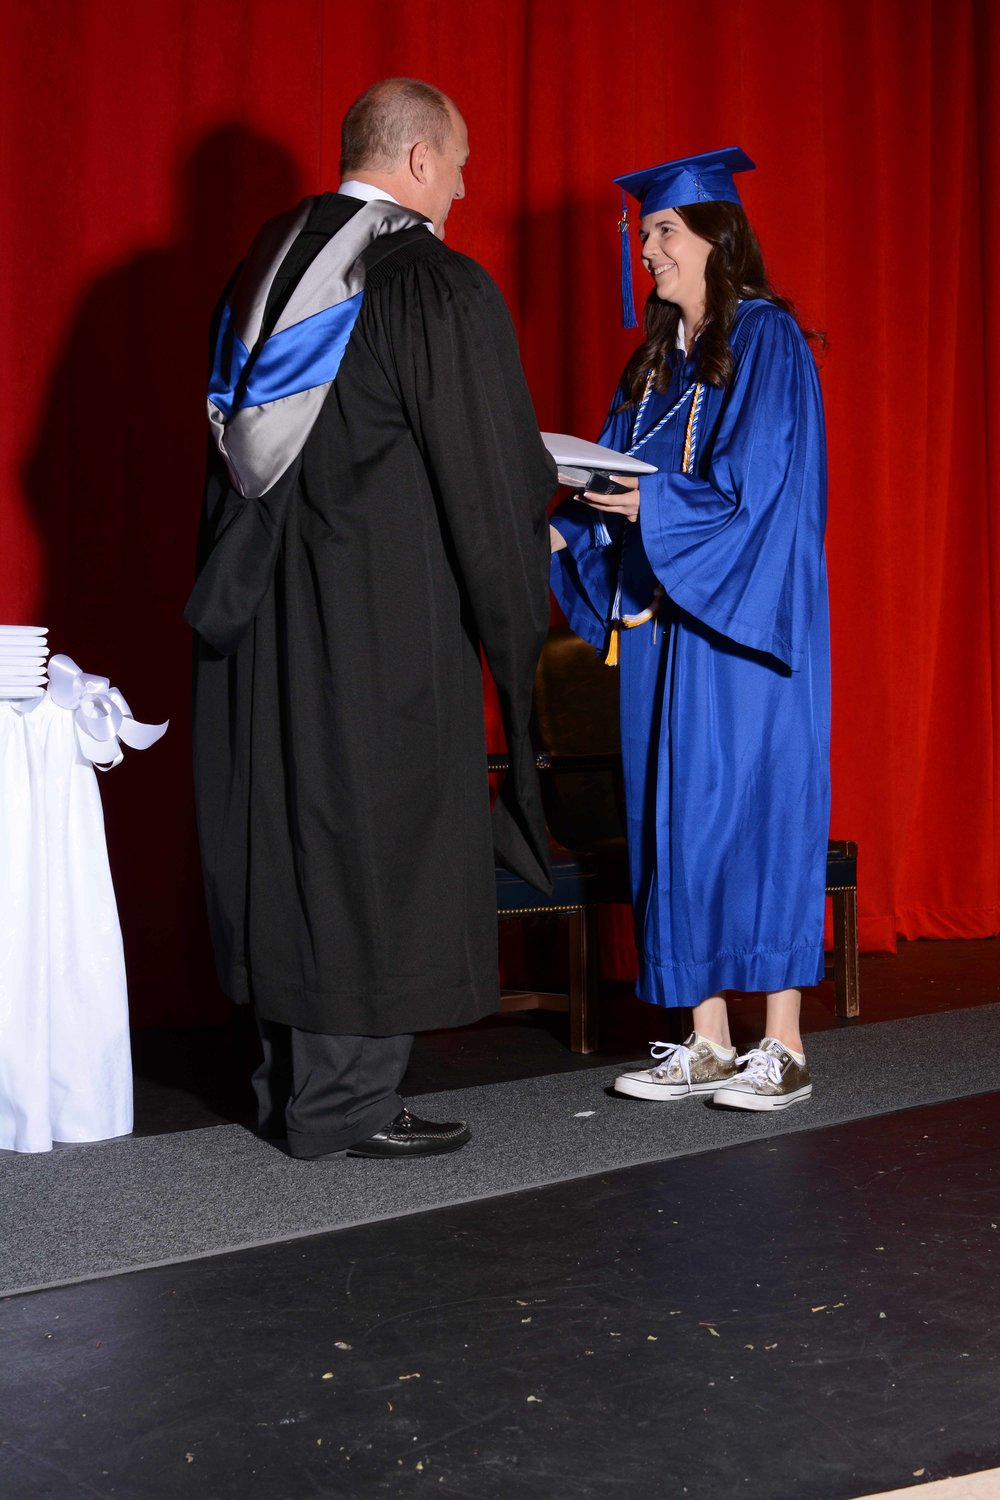 May15 HardingGraduation25.jpg